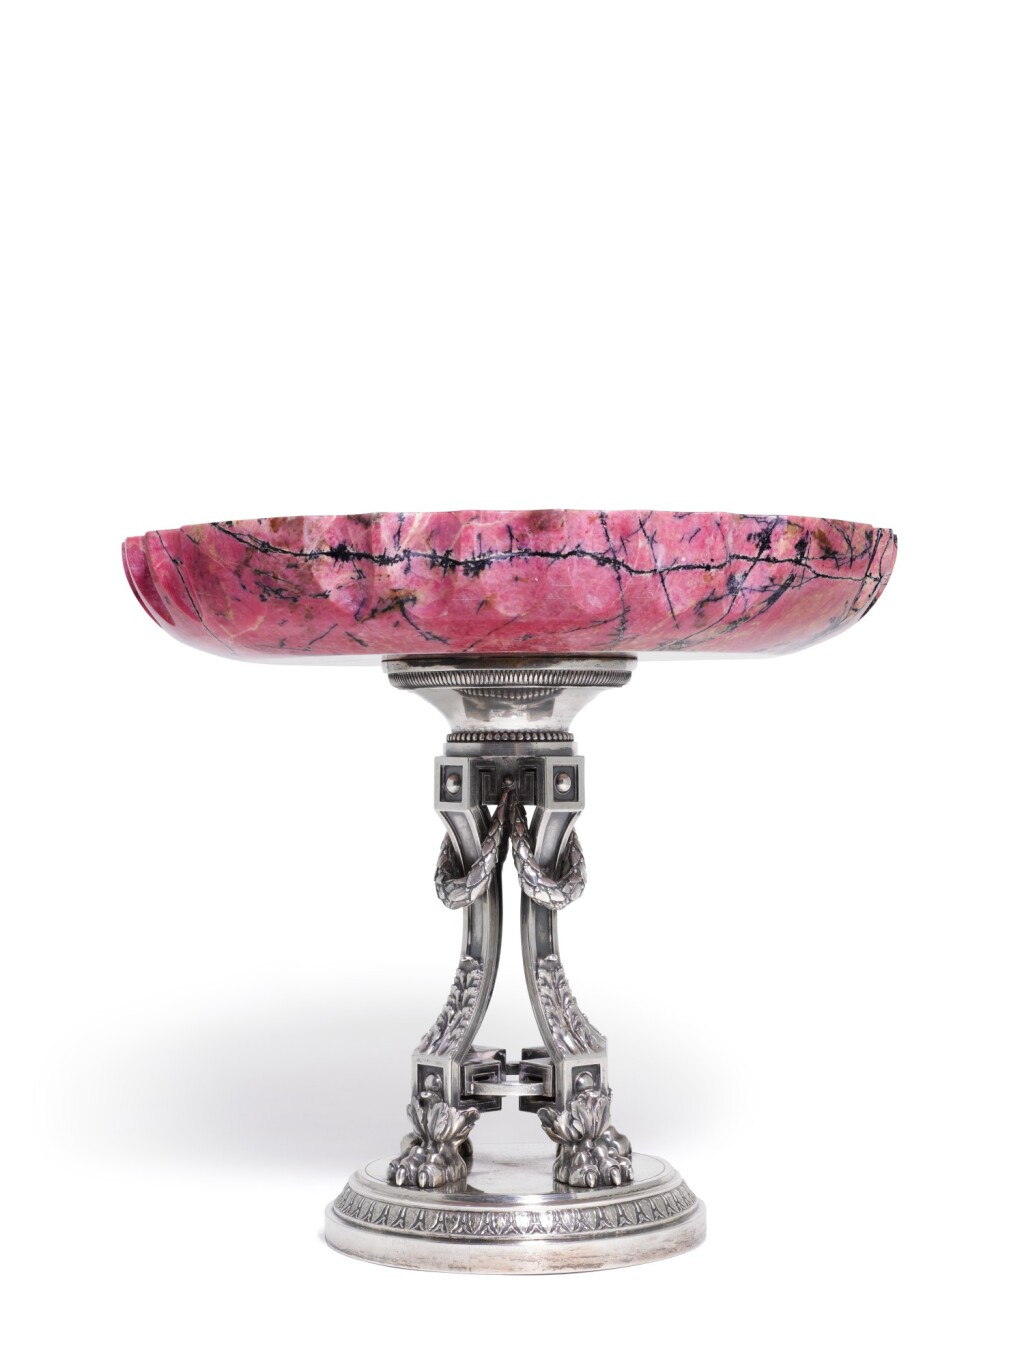 A LARGE FABERGÉ SILVER-MOUNTED RHODONITE TAZZA, MOSCOW, 1908-1917